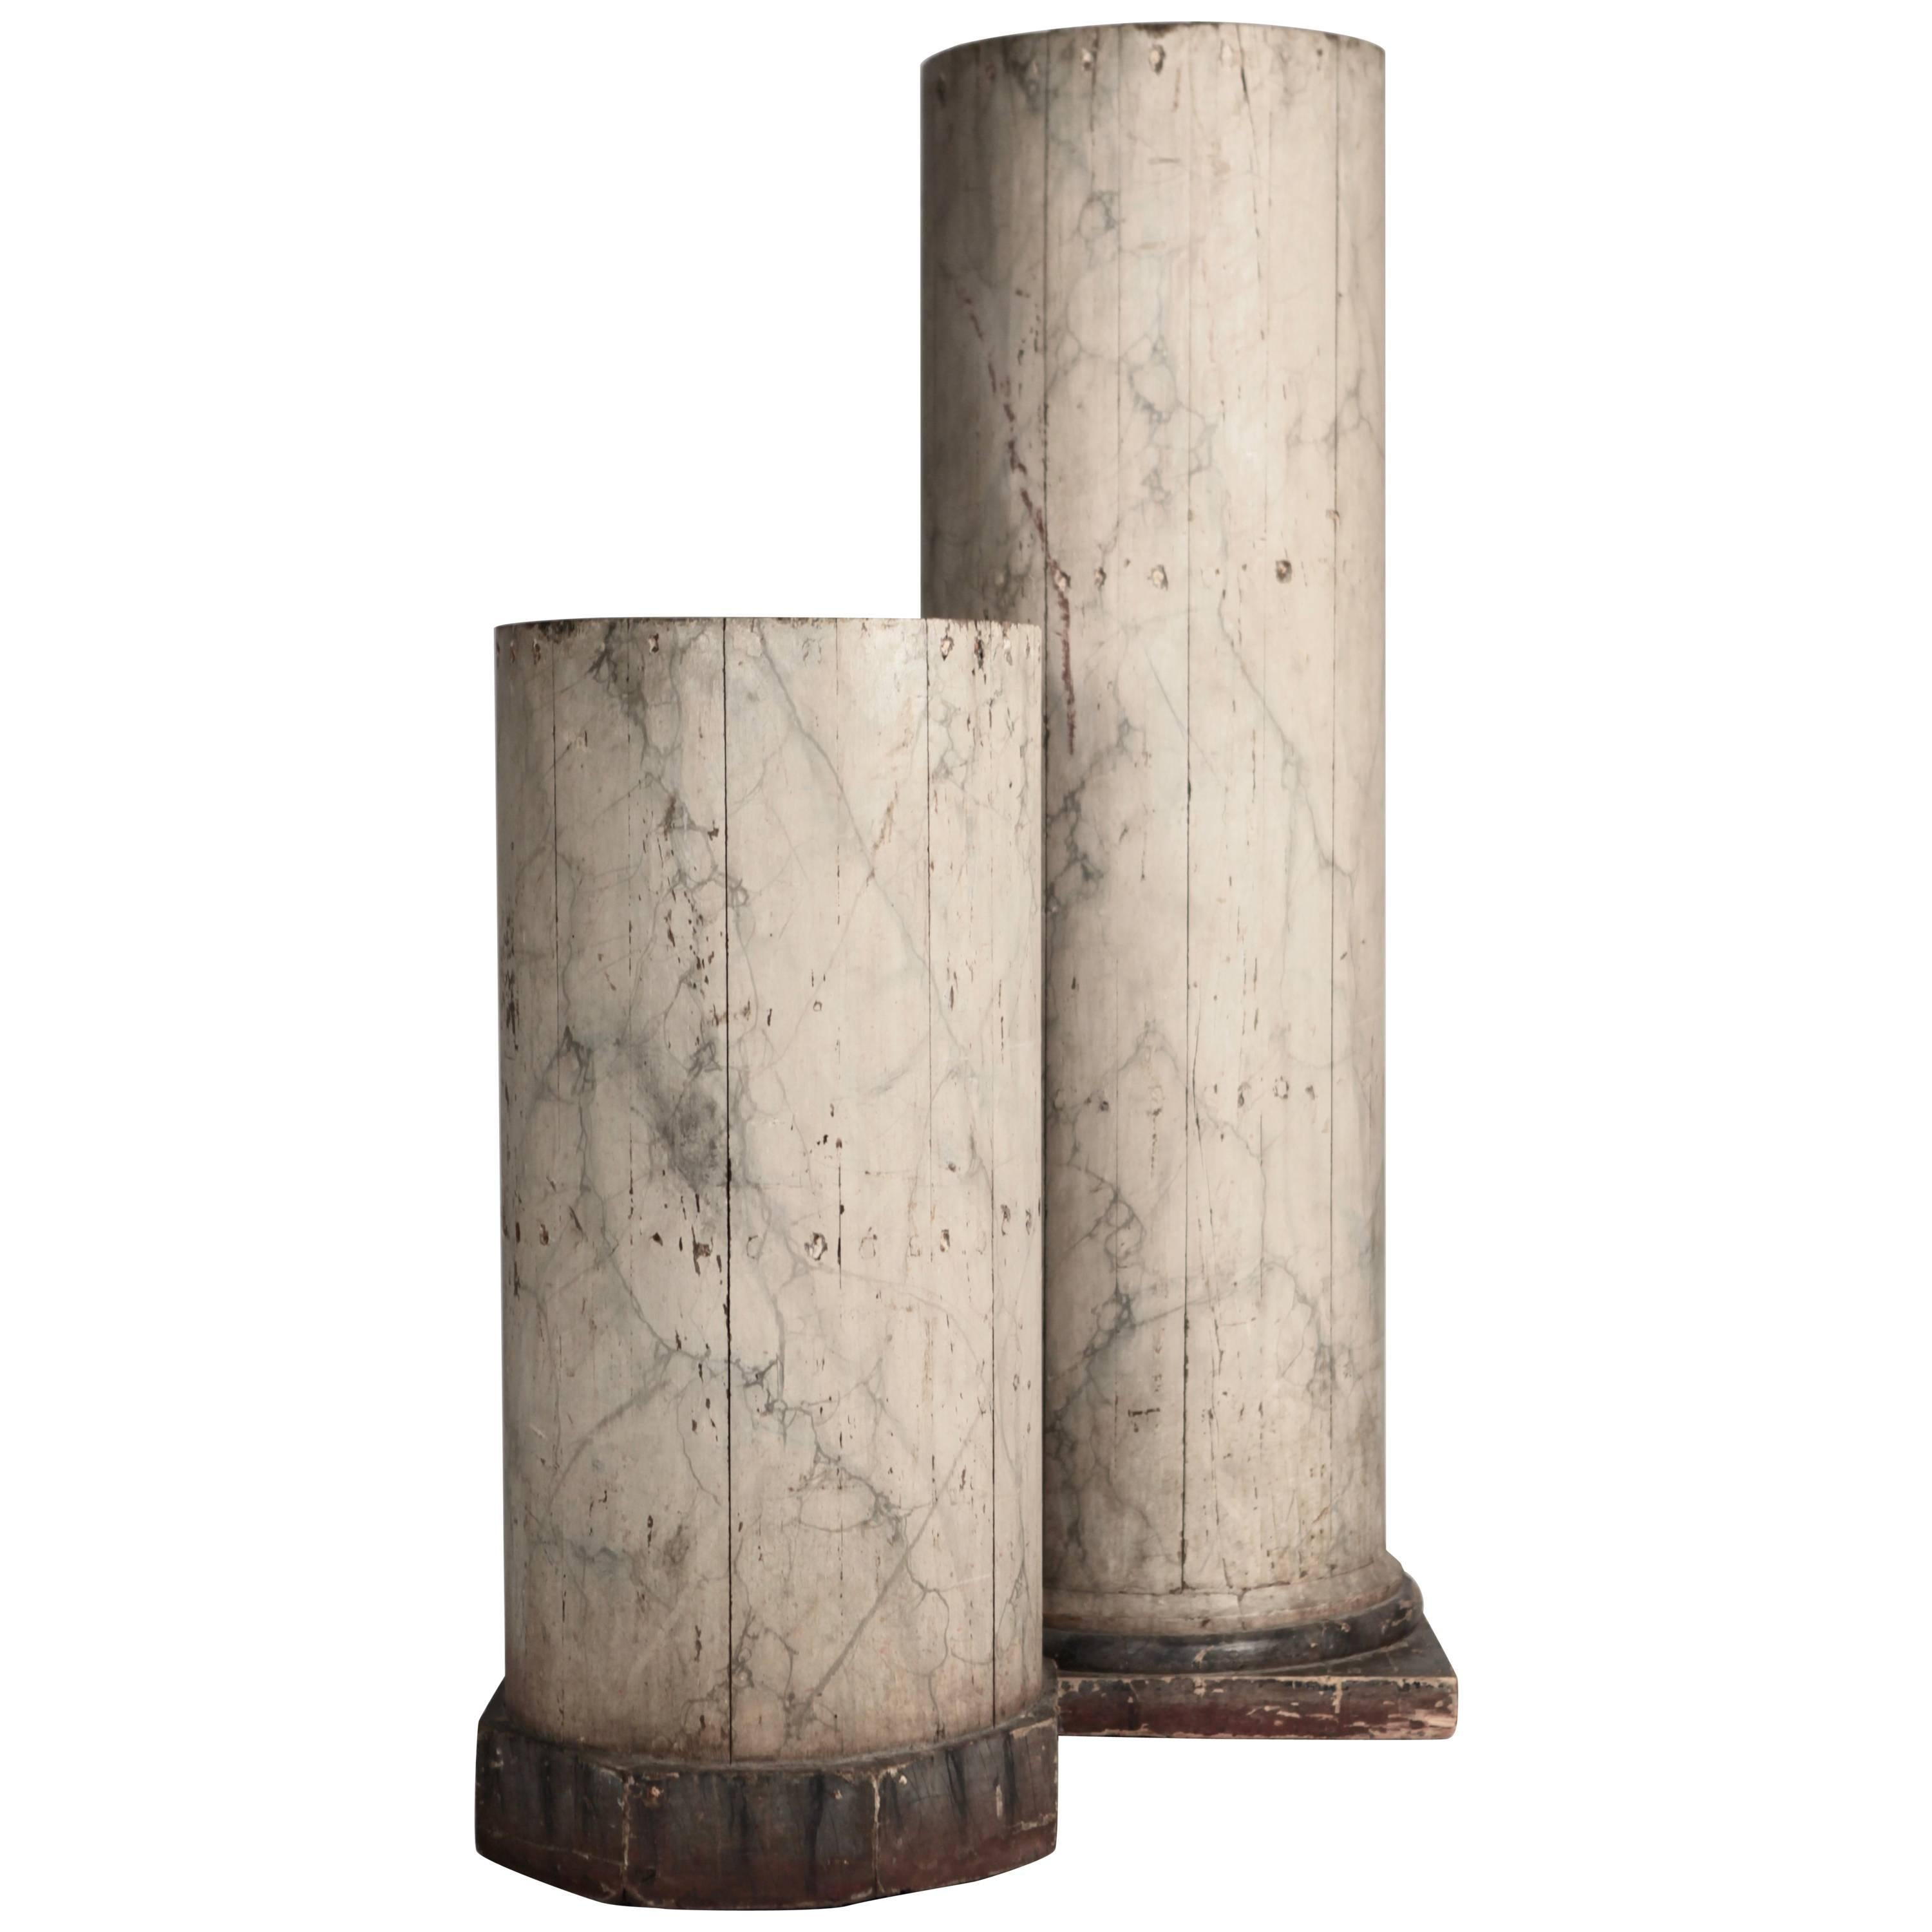 Pair of Large North Italian Marbled Wood Columns 19th Century